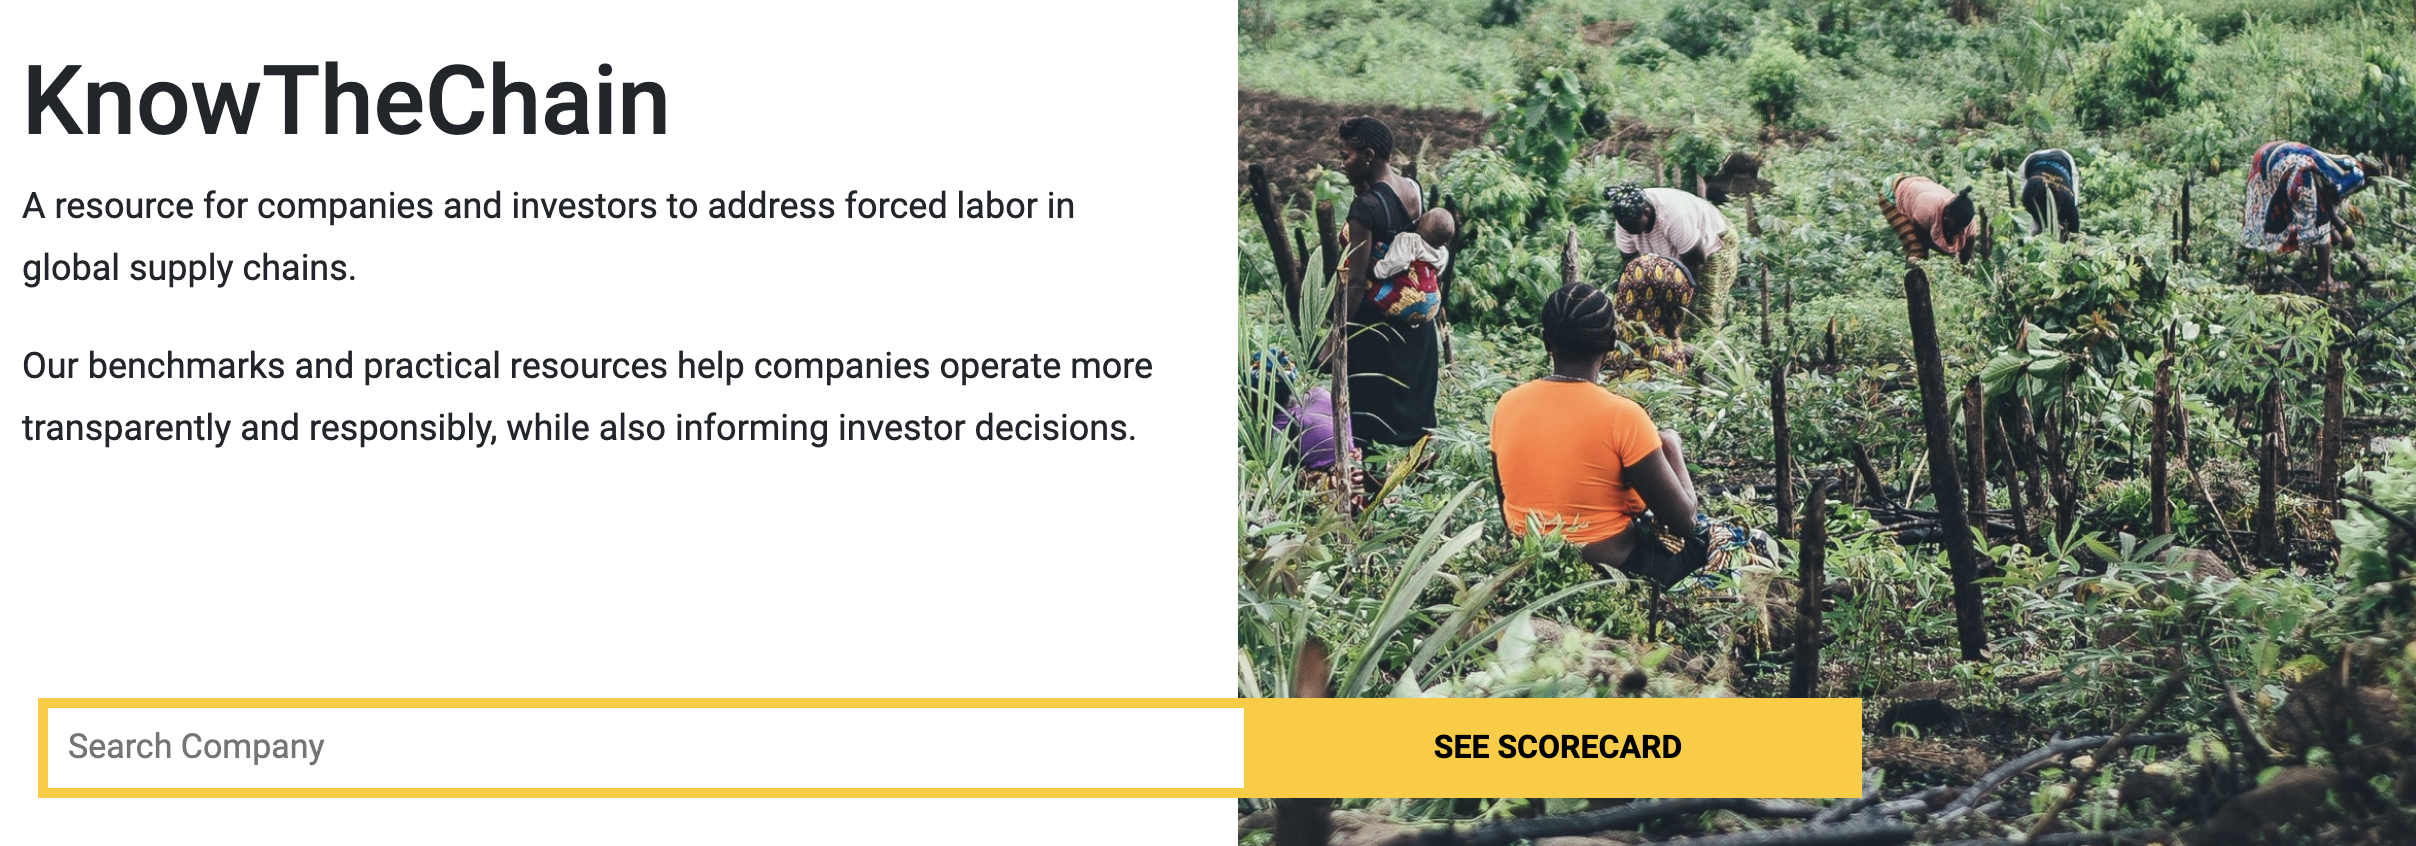 homepage with an image of a forest and a short description of the goal of helping companies operate with more transparency, as well as a company search bar